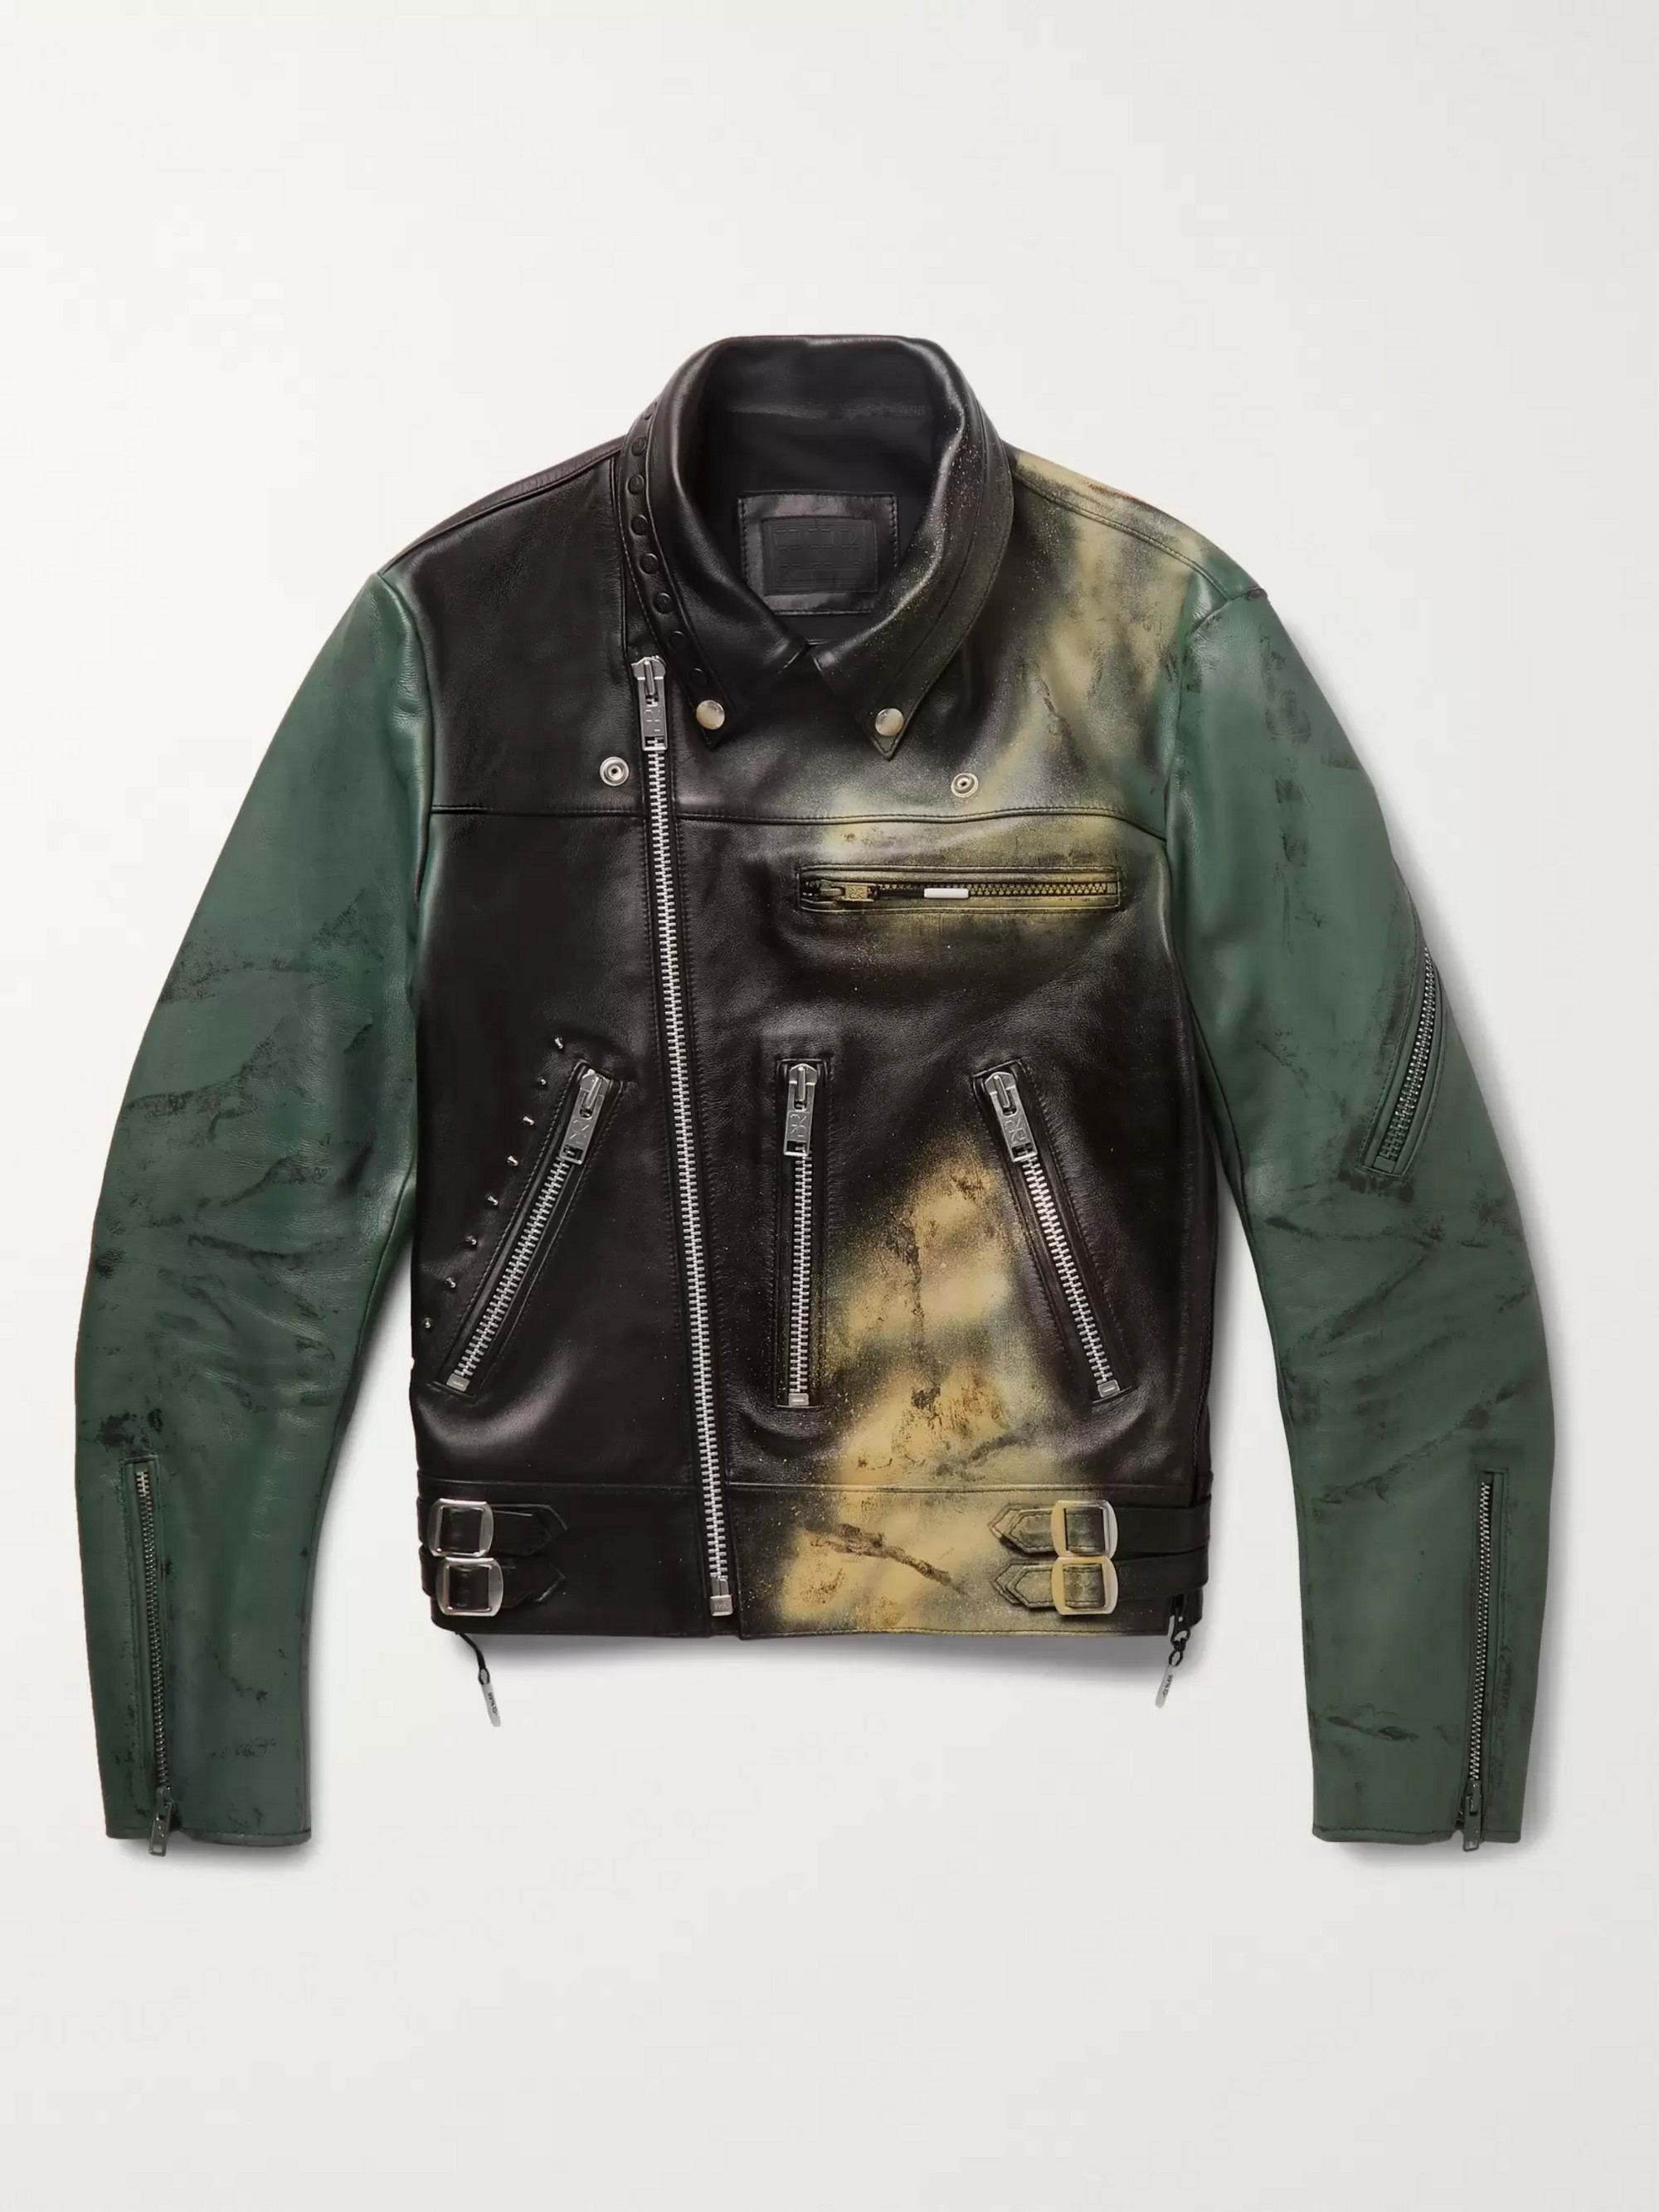 99%IS- Spray-Painted Leather Biker Jacket